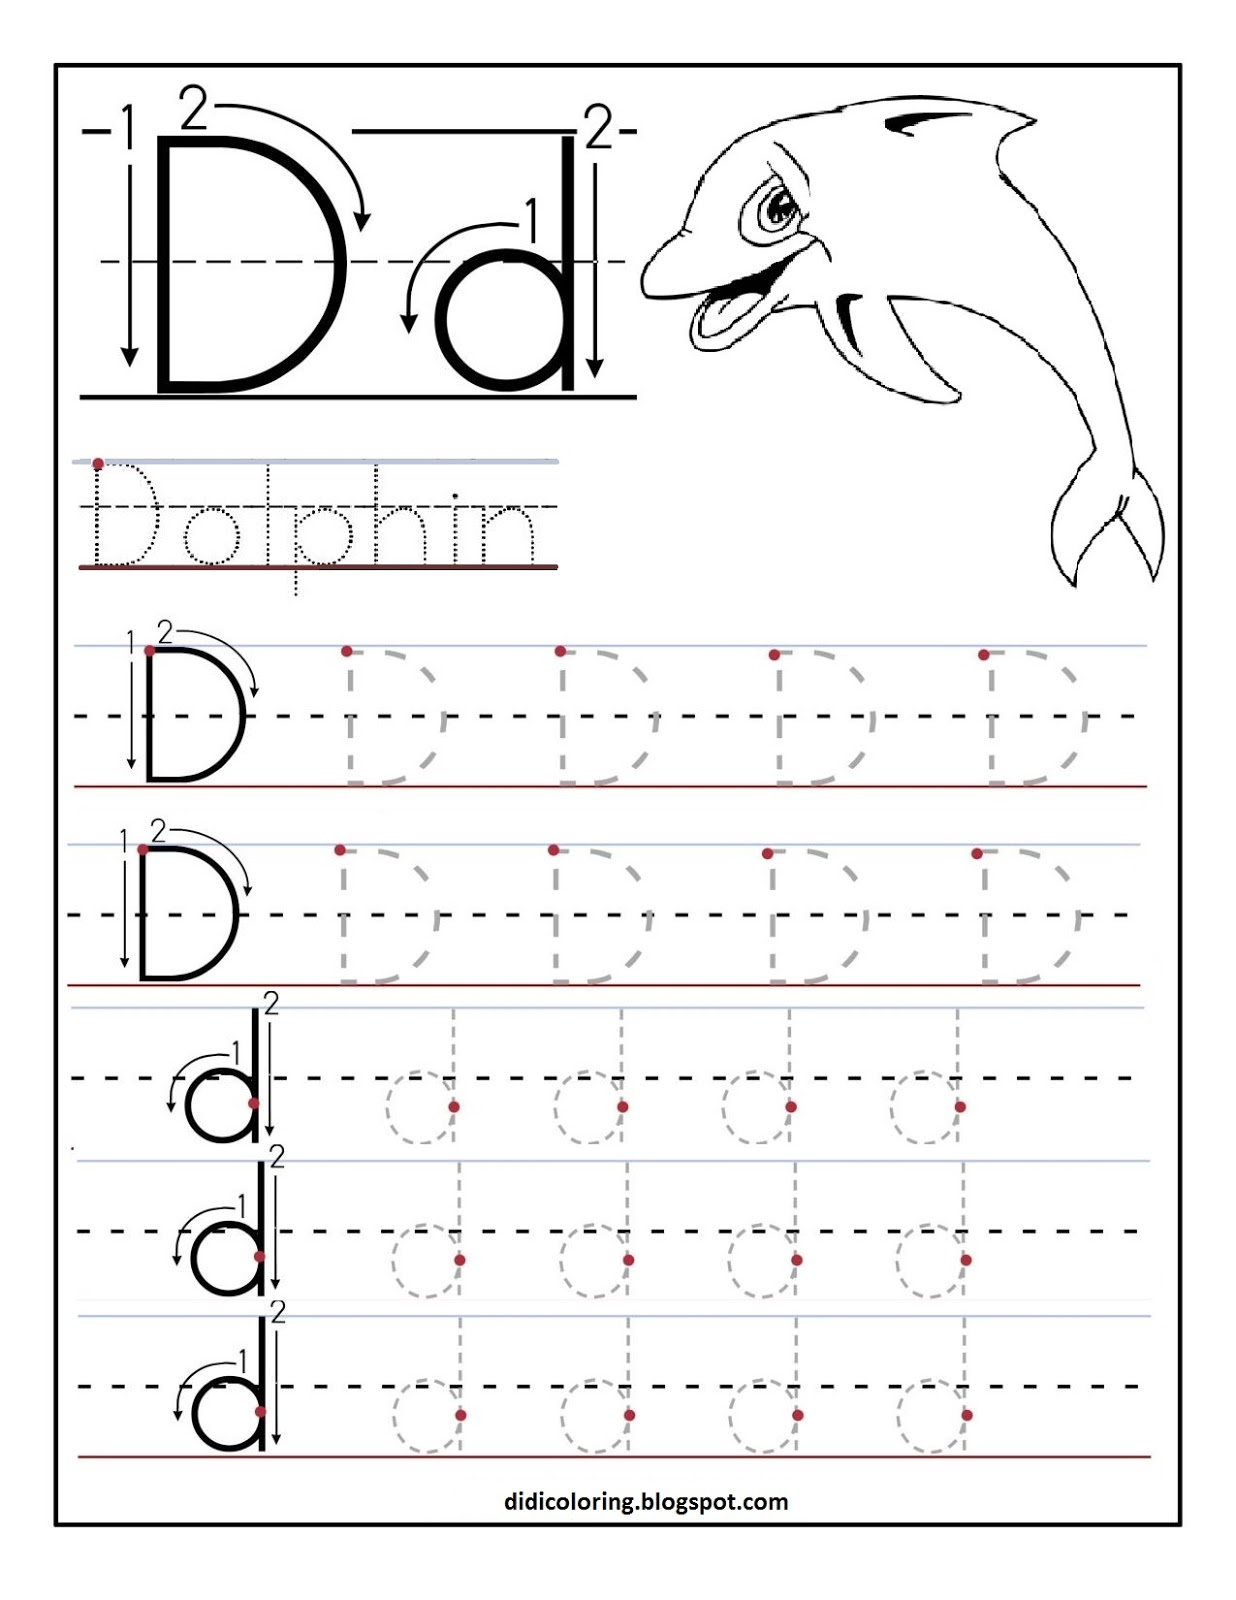 Free Printable Worksheet For Kidsst For Your Child To Learn And Write